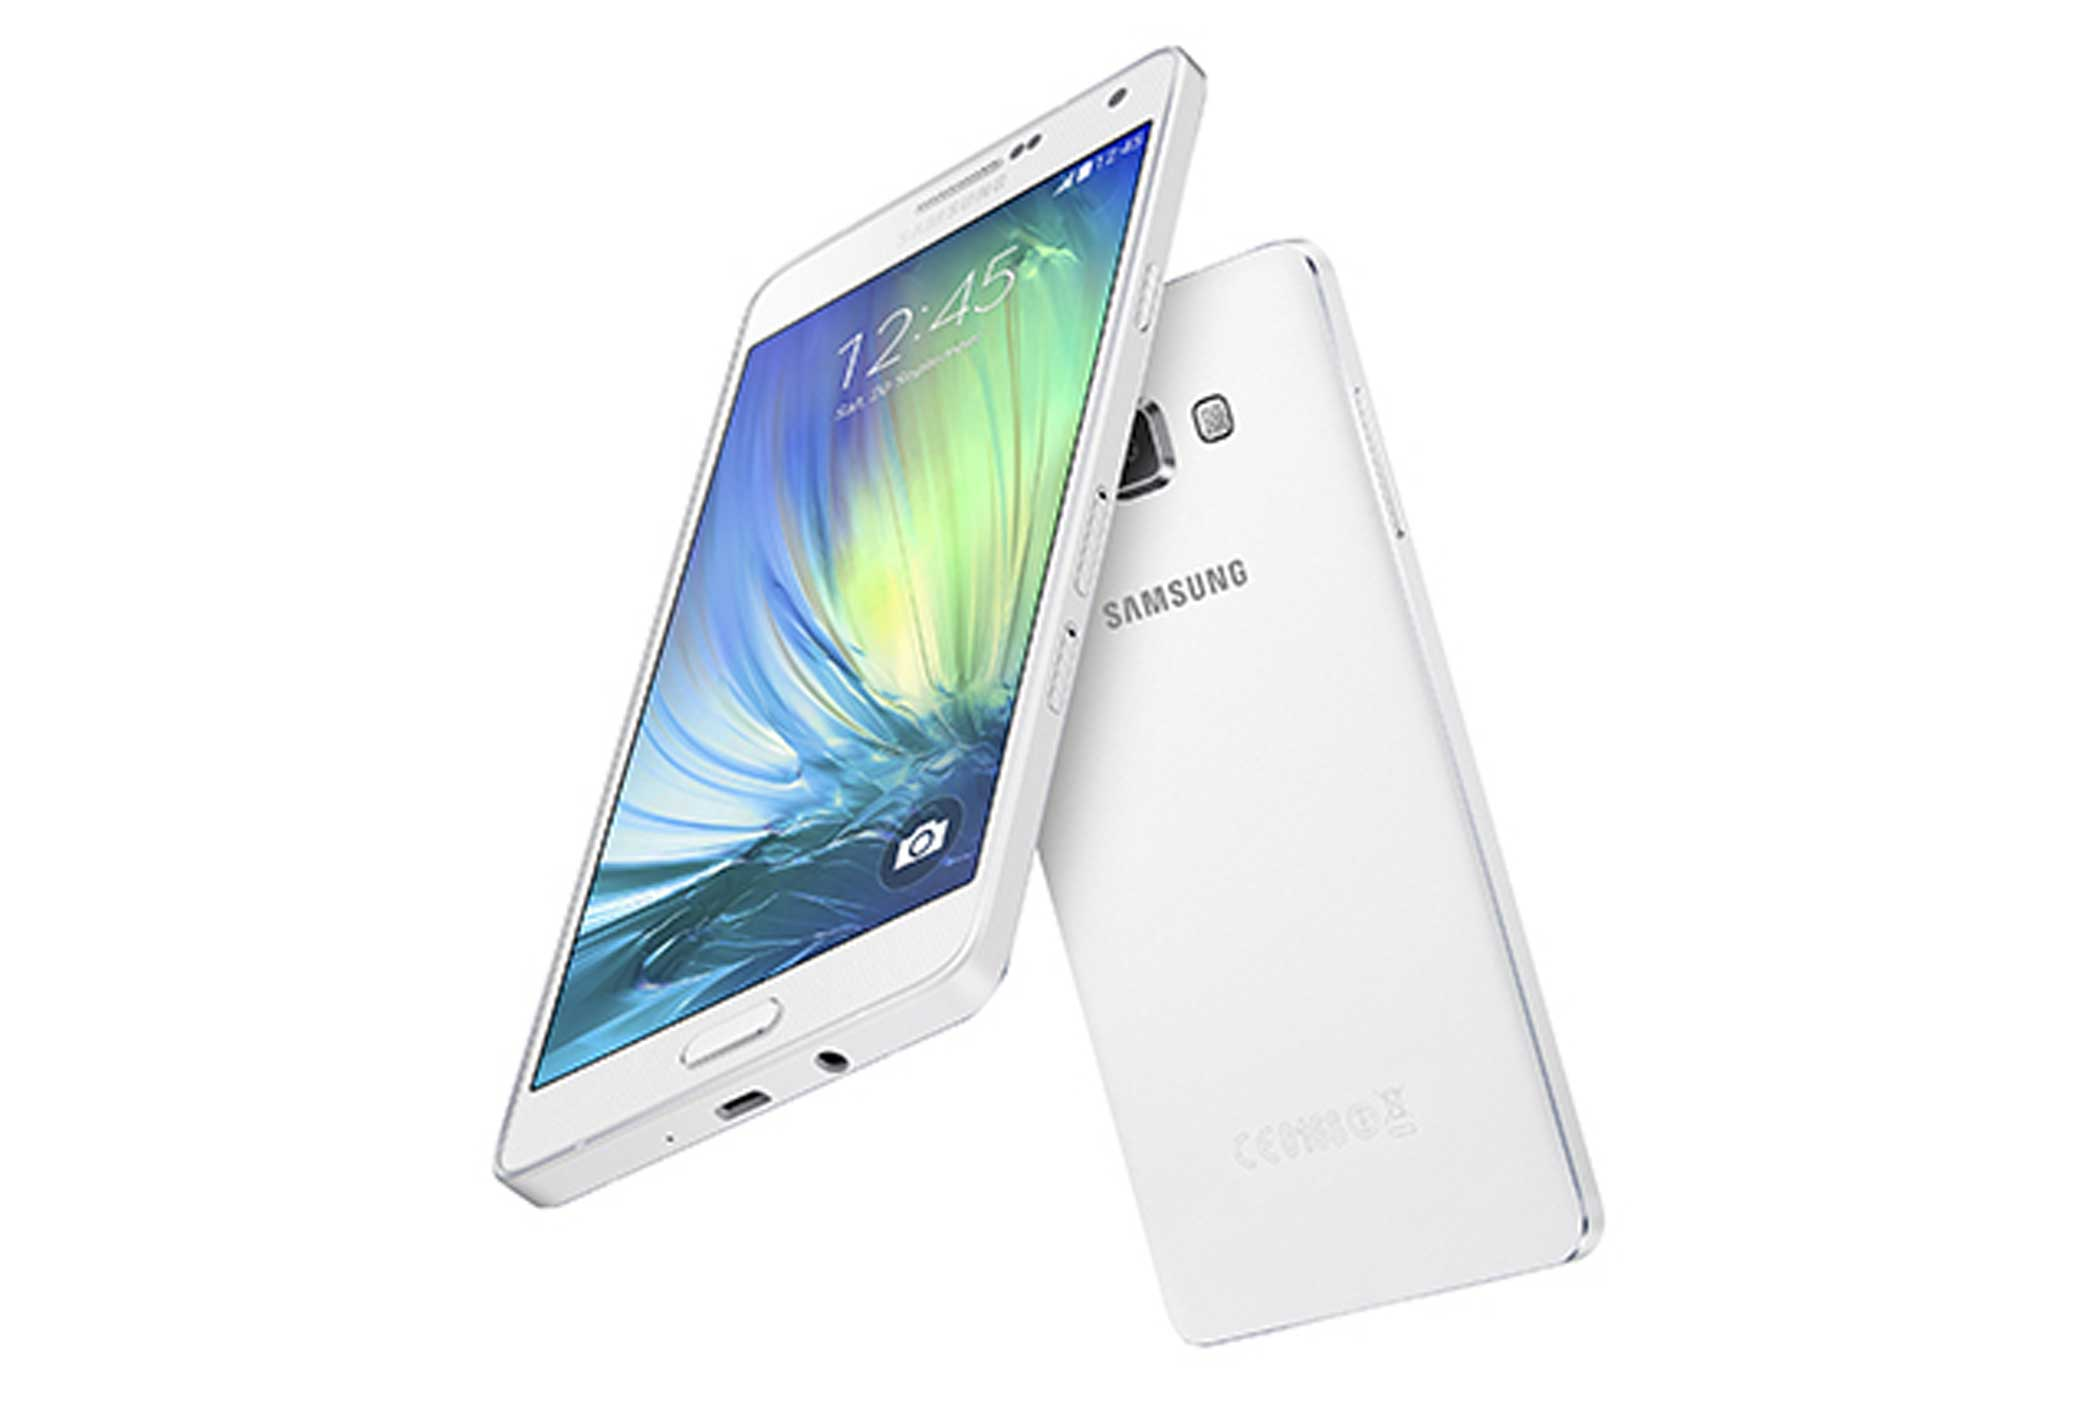 <b>Galaxy A7</b>: The mid-range Galaxy A7 doesn't have the specs to match the flagship Galaxy S6 but it's a sleek device that's only 6.3 mm thick and comes with a 5.5-inch display.